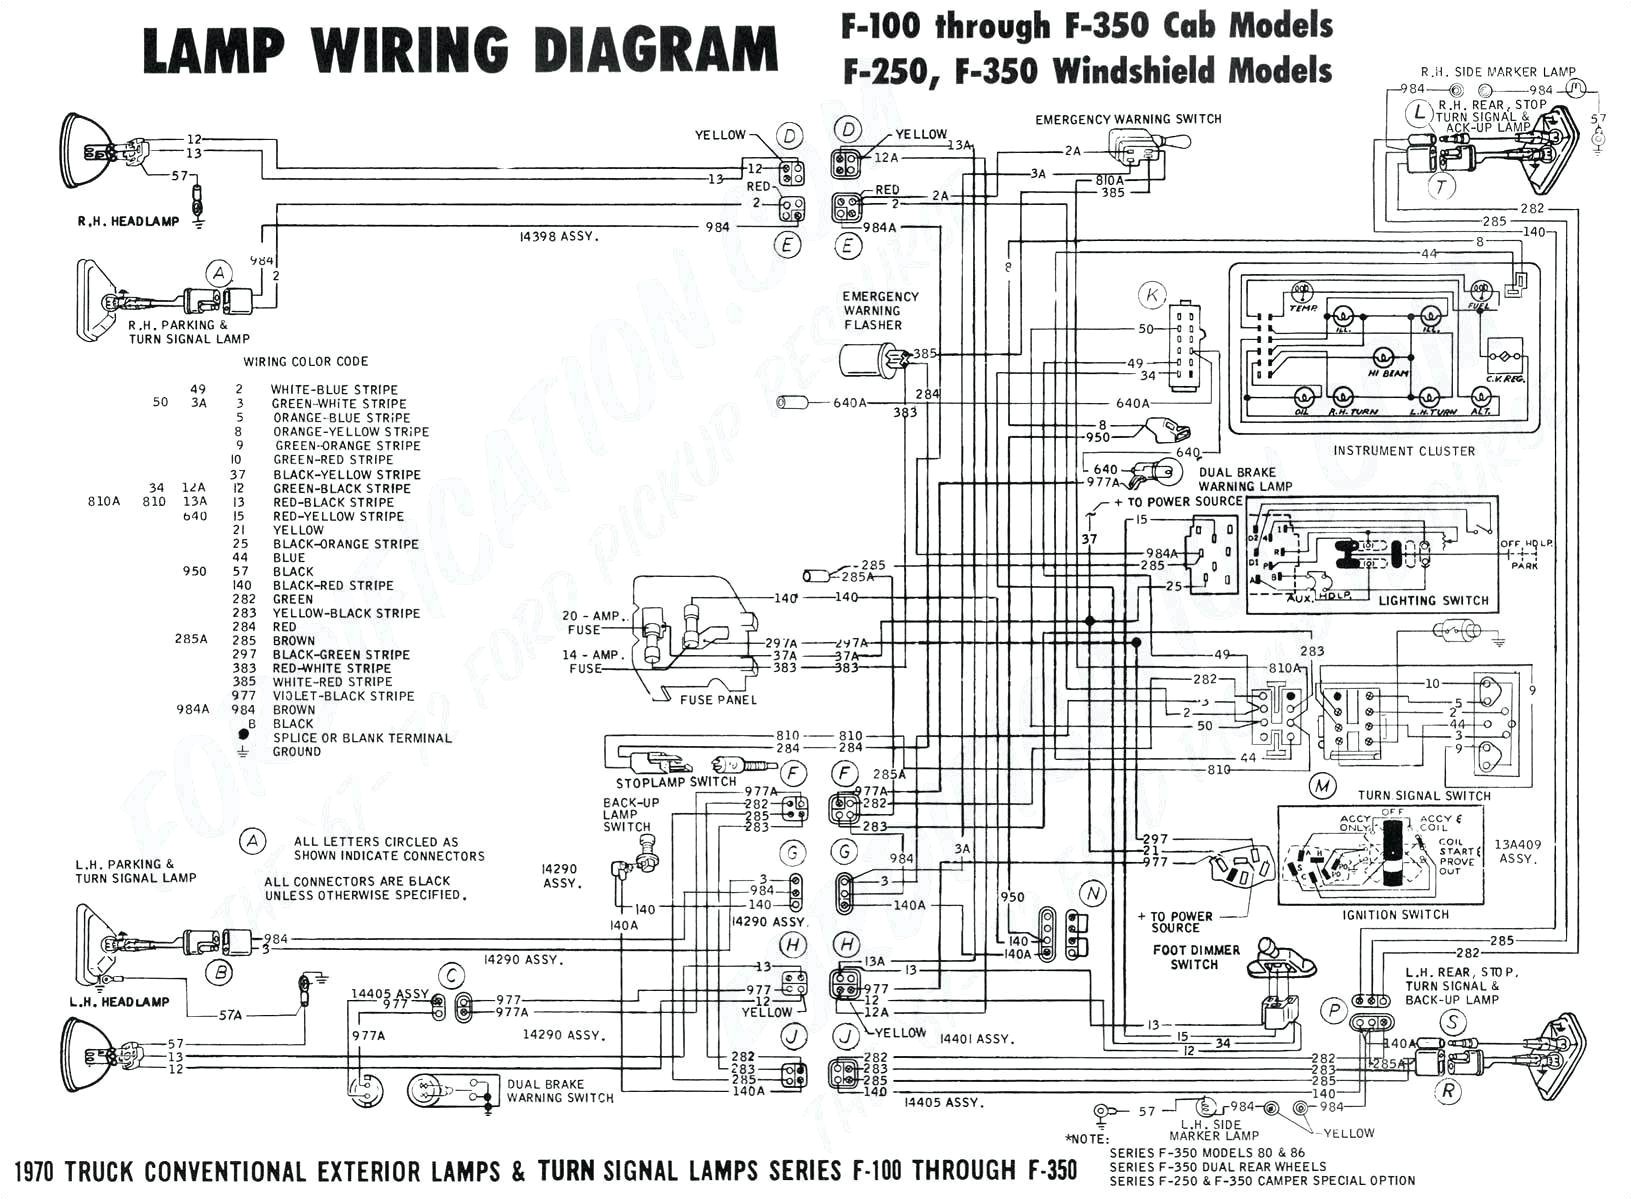 Toyota Fujitsu Ten 86120 Wiring Diagram 2001 toyota Tundra Stereo Wiring Diagram Wiring Diagram Of Toyota Fujitsu Ten 86120 Wiring Diagram